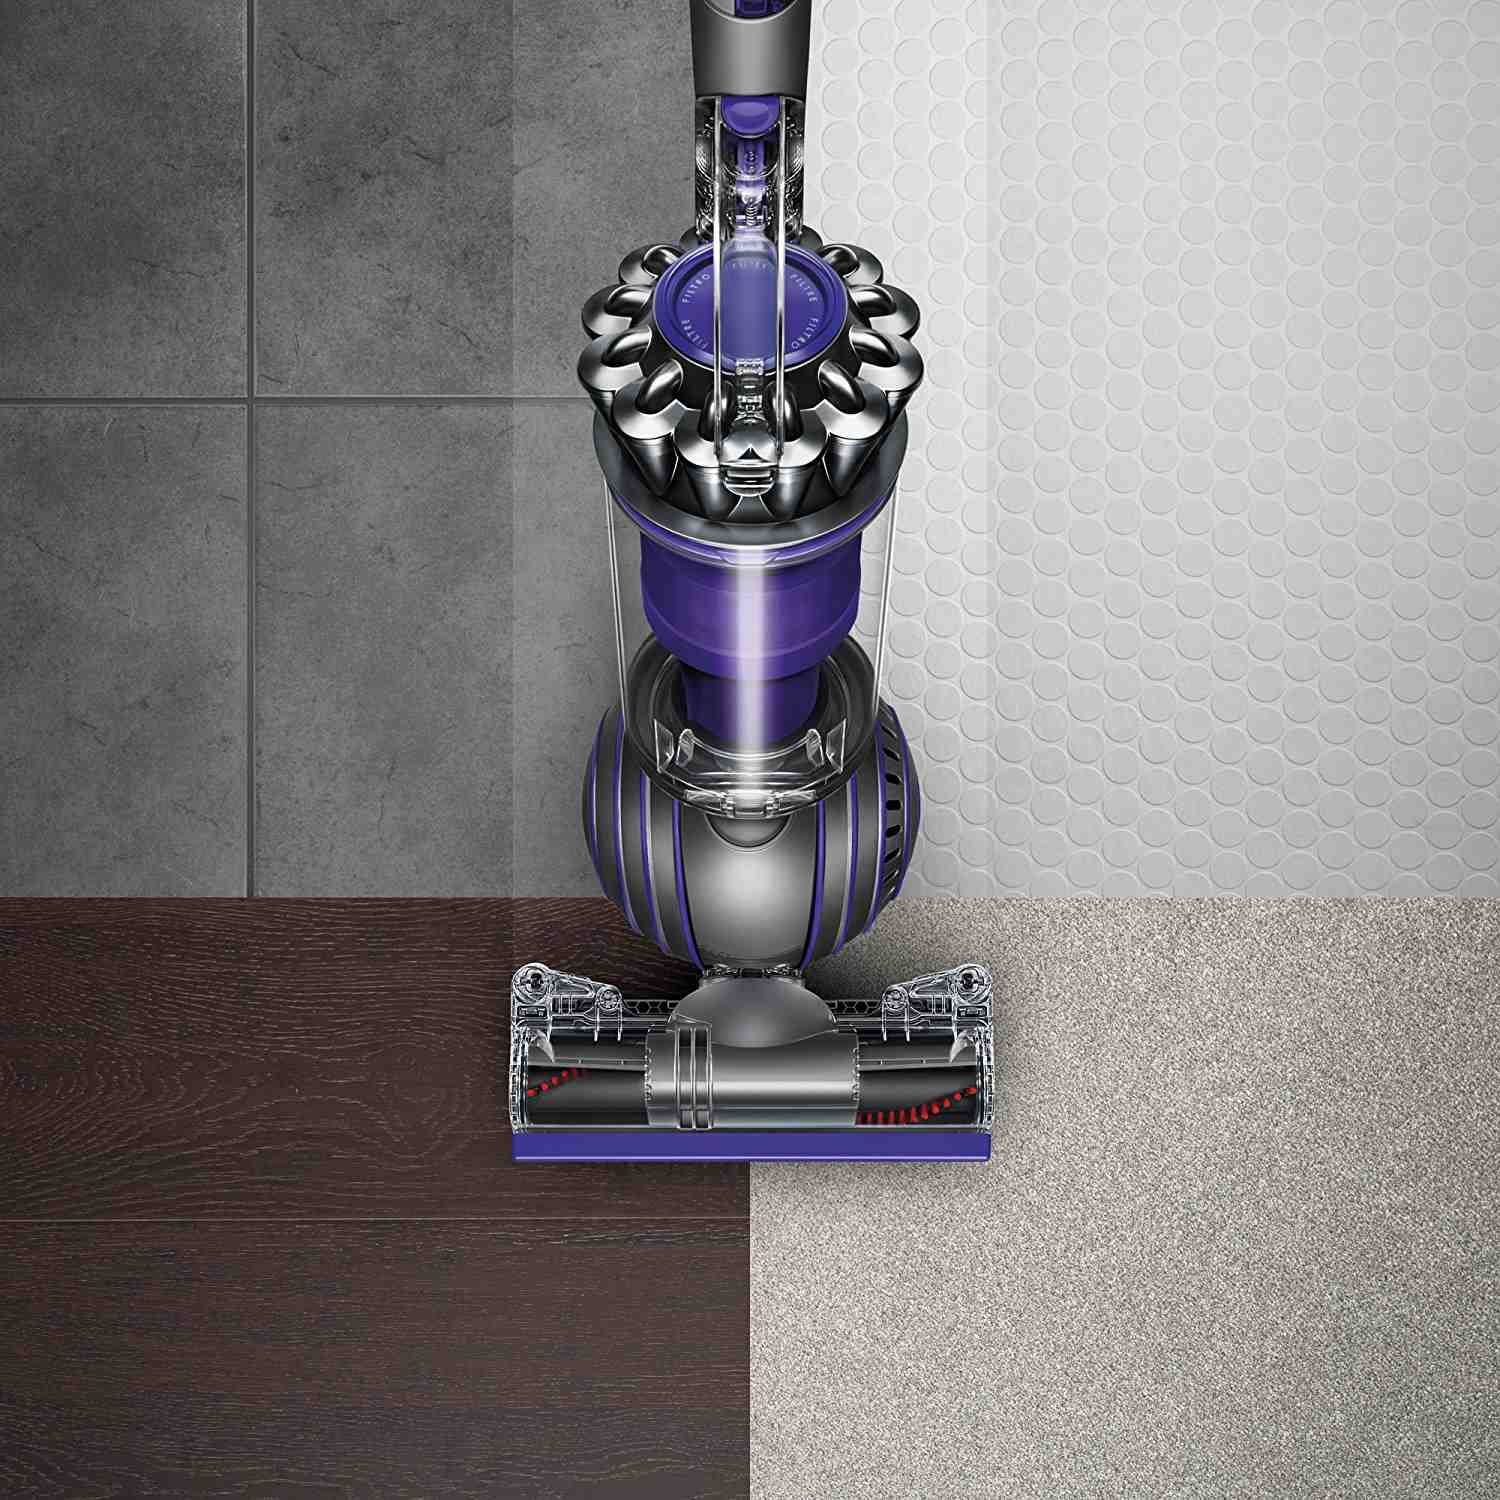 The 8 Best Vacuums For Pet Hair To Buy In 2020 Upright Vacuums Best Vacuum Dyson